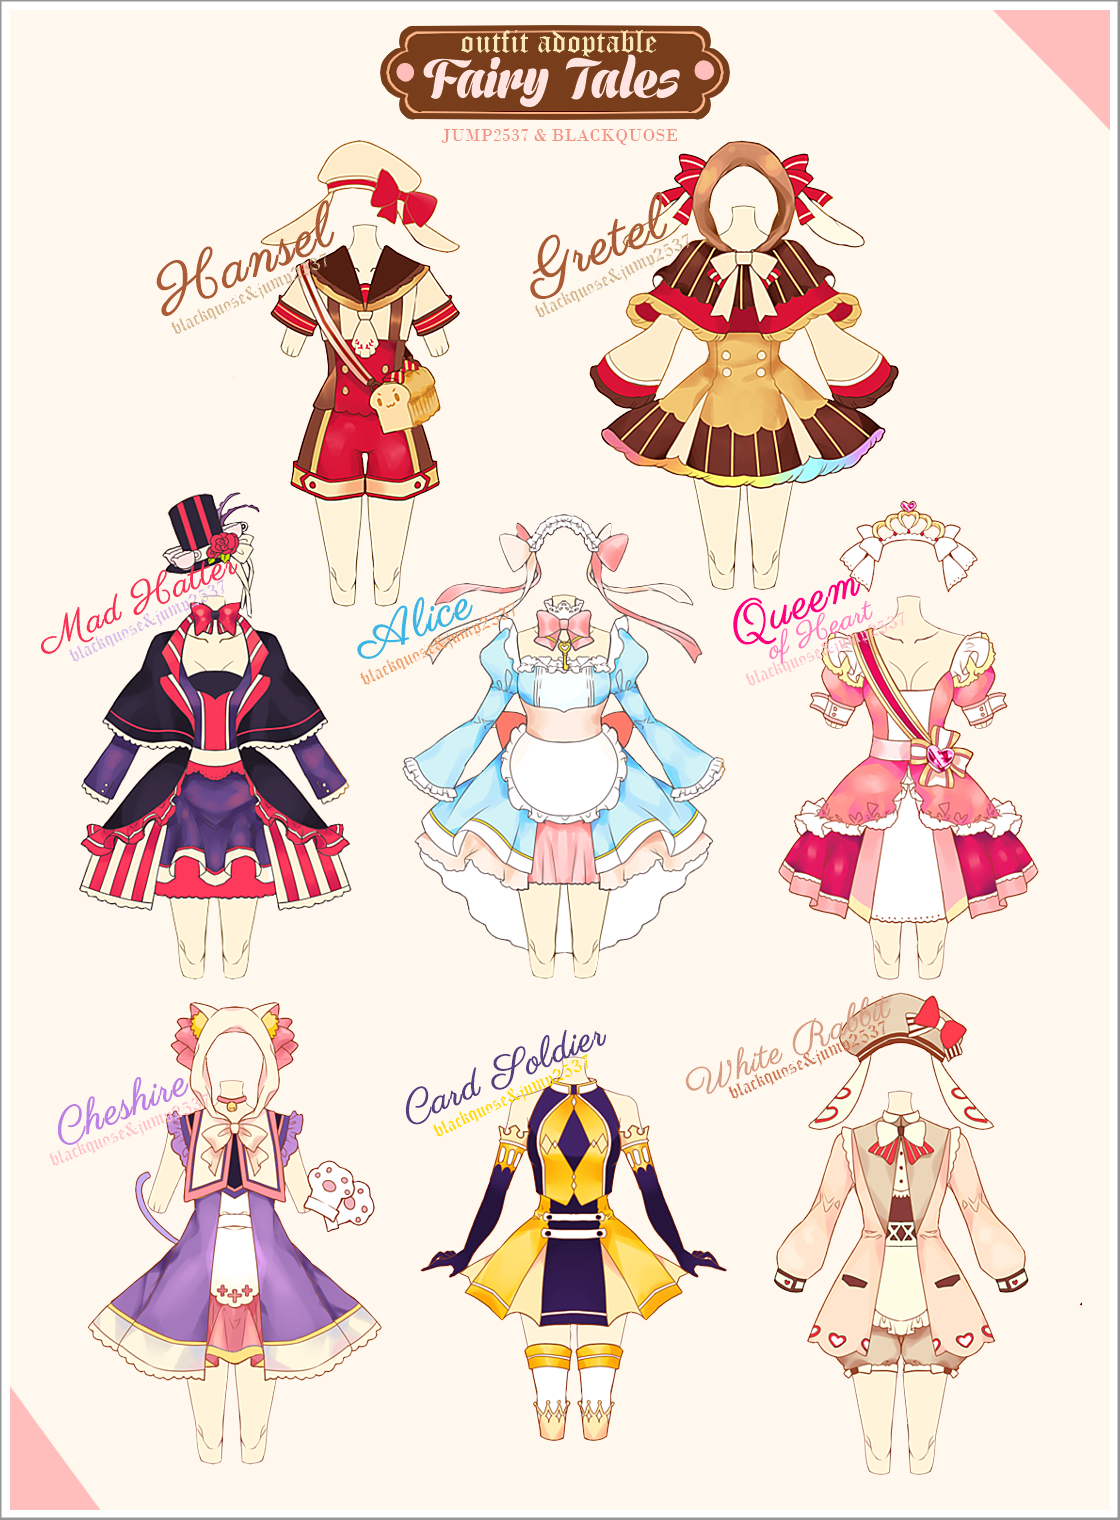 [OPEN] Fairy Tales Outfit Adoptable 10 by BlackQuose